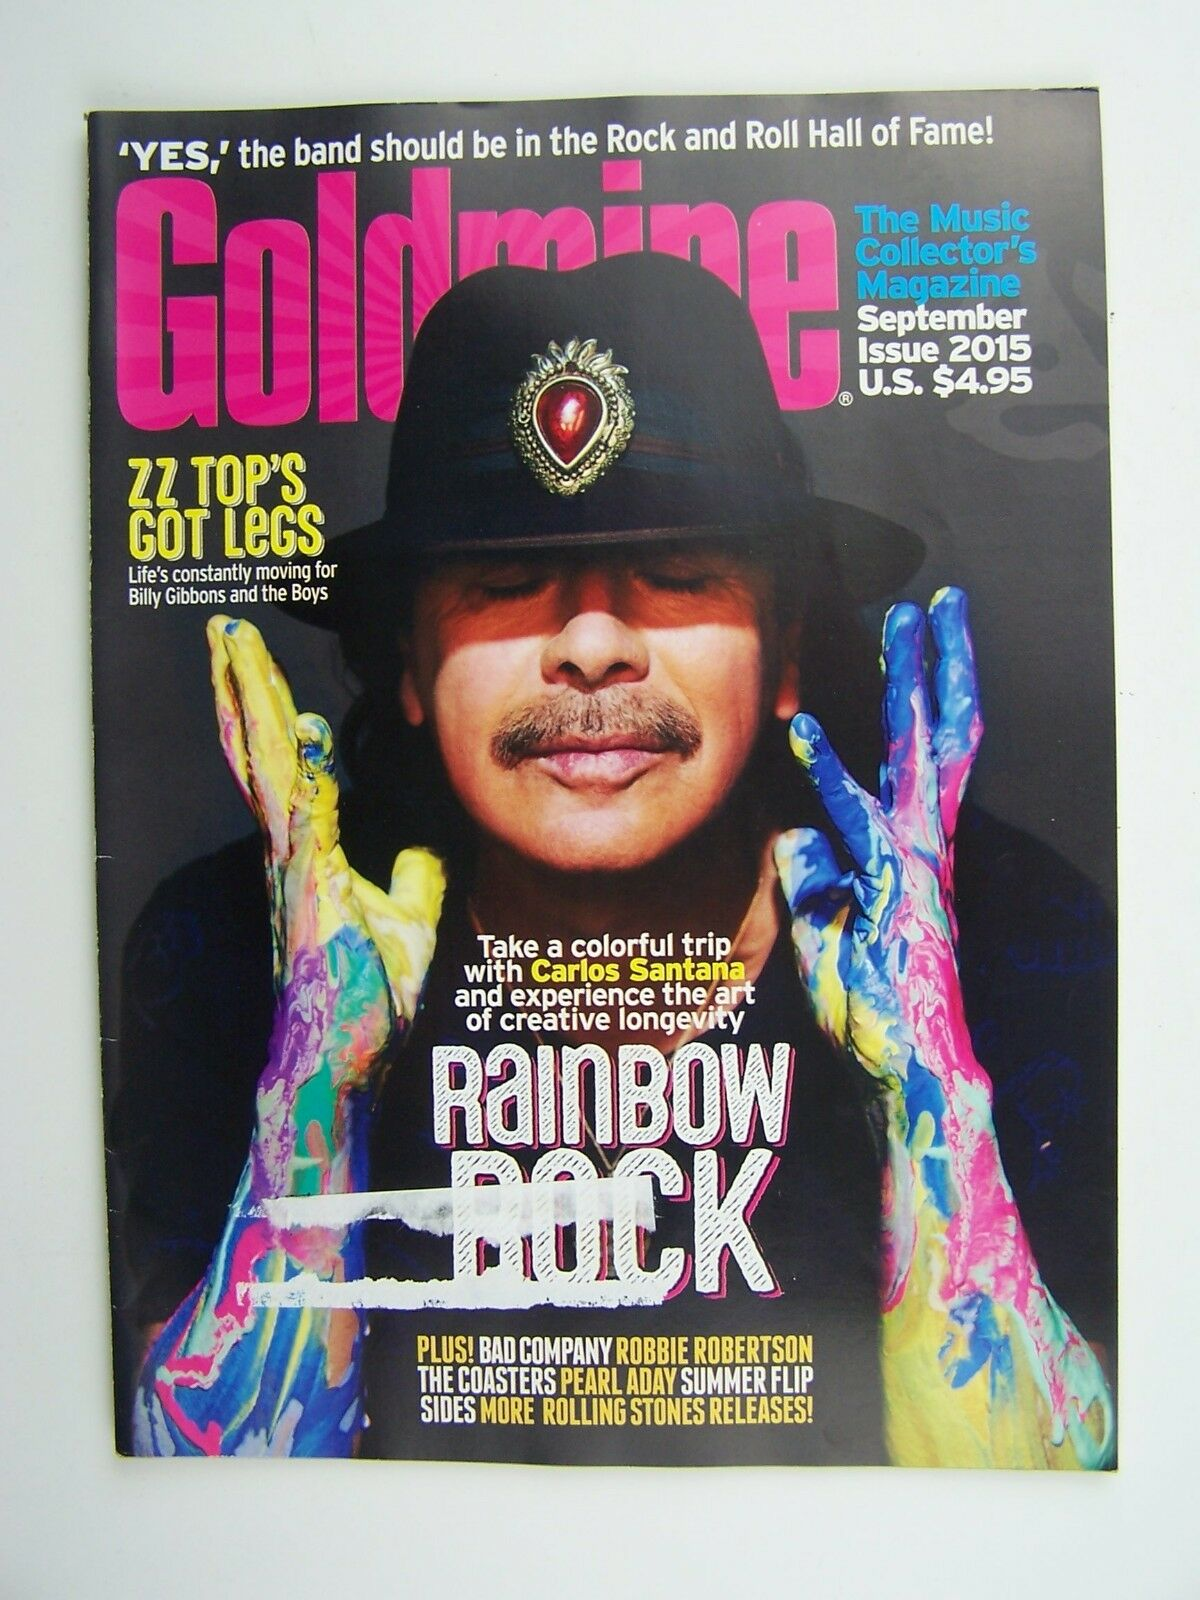 Goldmine The Music Collector's Magazine September 2015